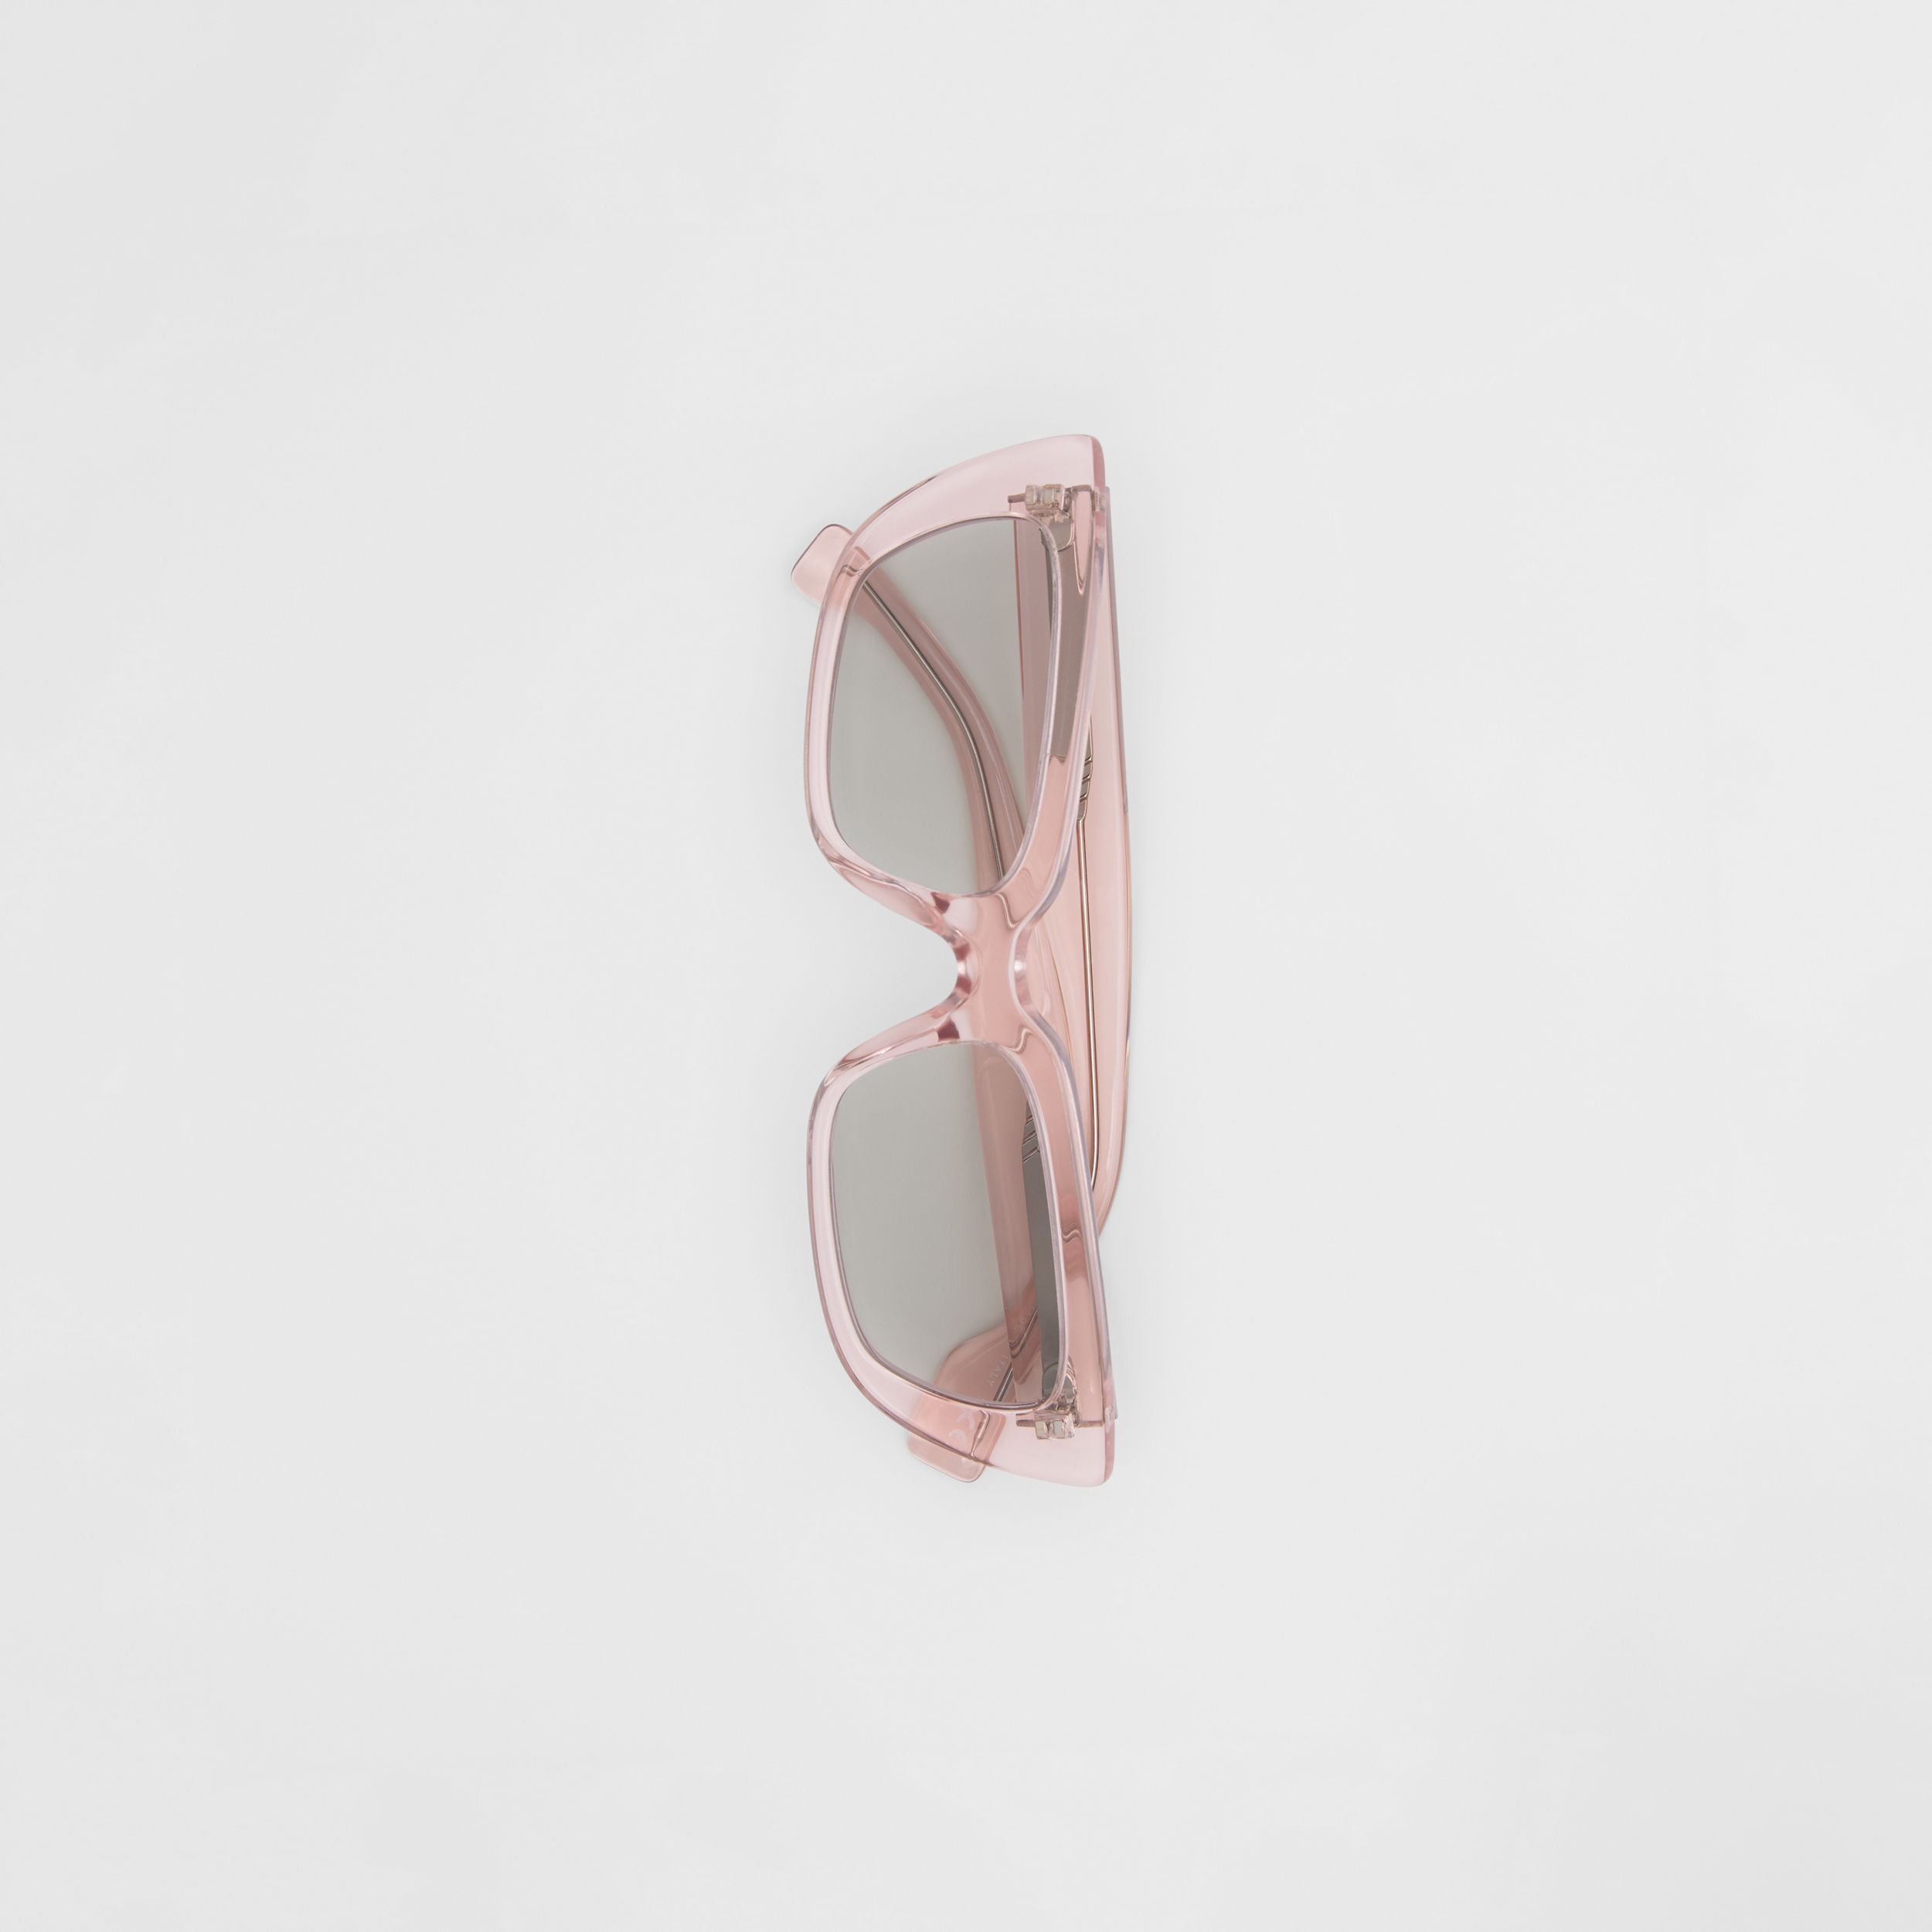 Bio-acetate Rectangular Frame Sunglasses in Light Pink - Women | Burberry Canada - 4